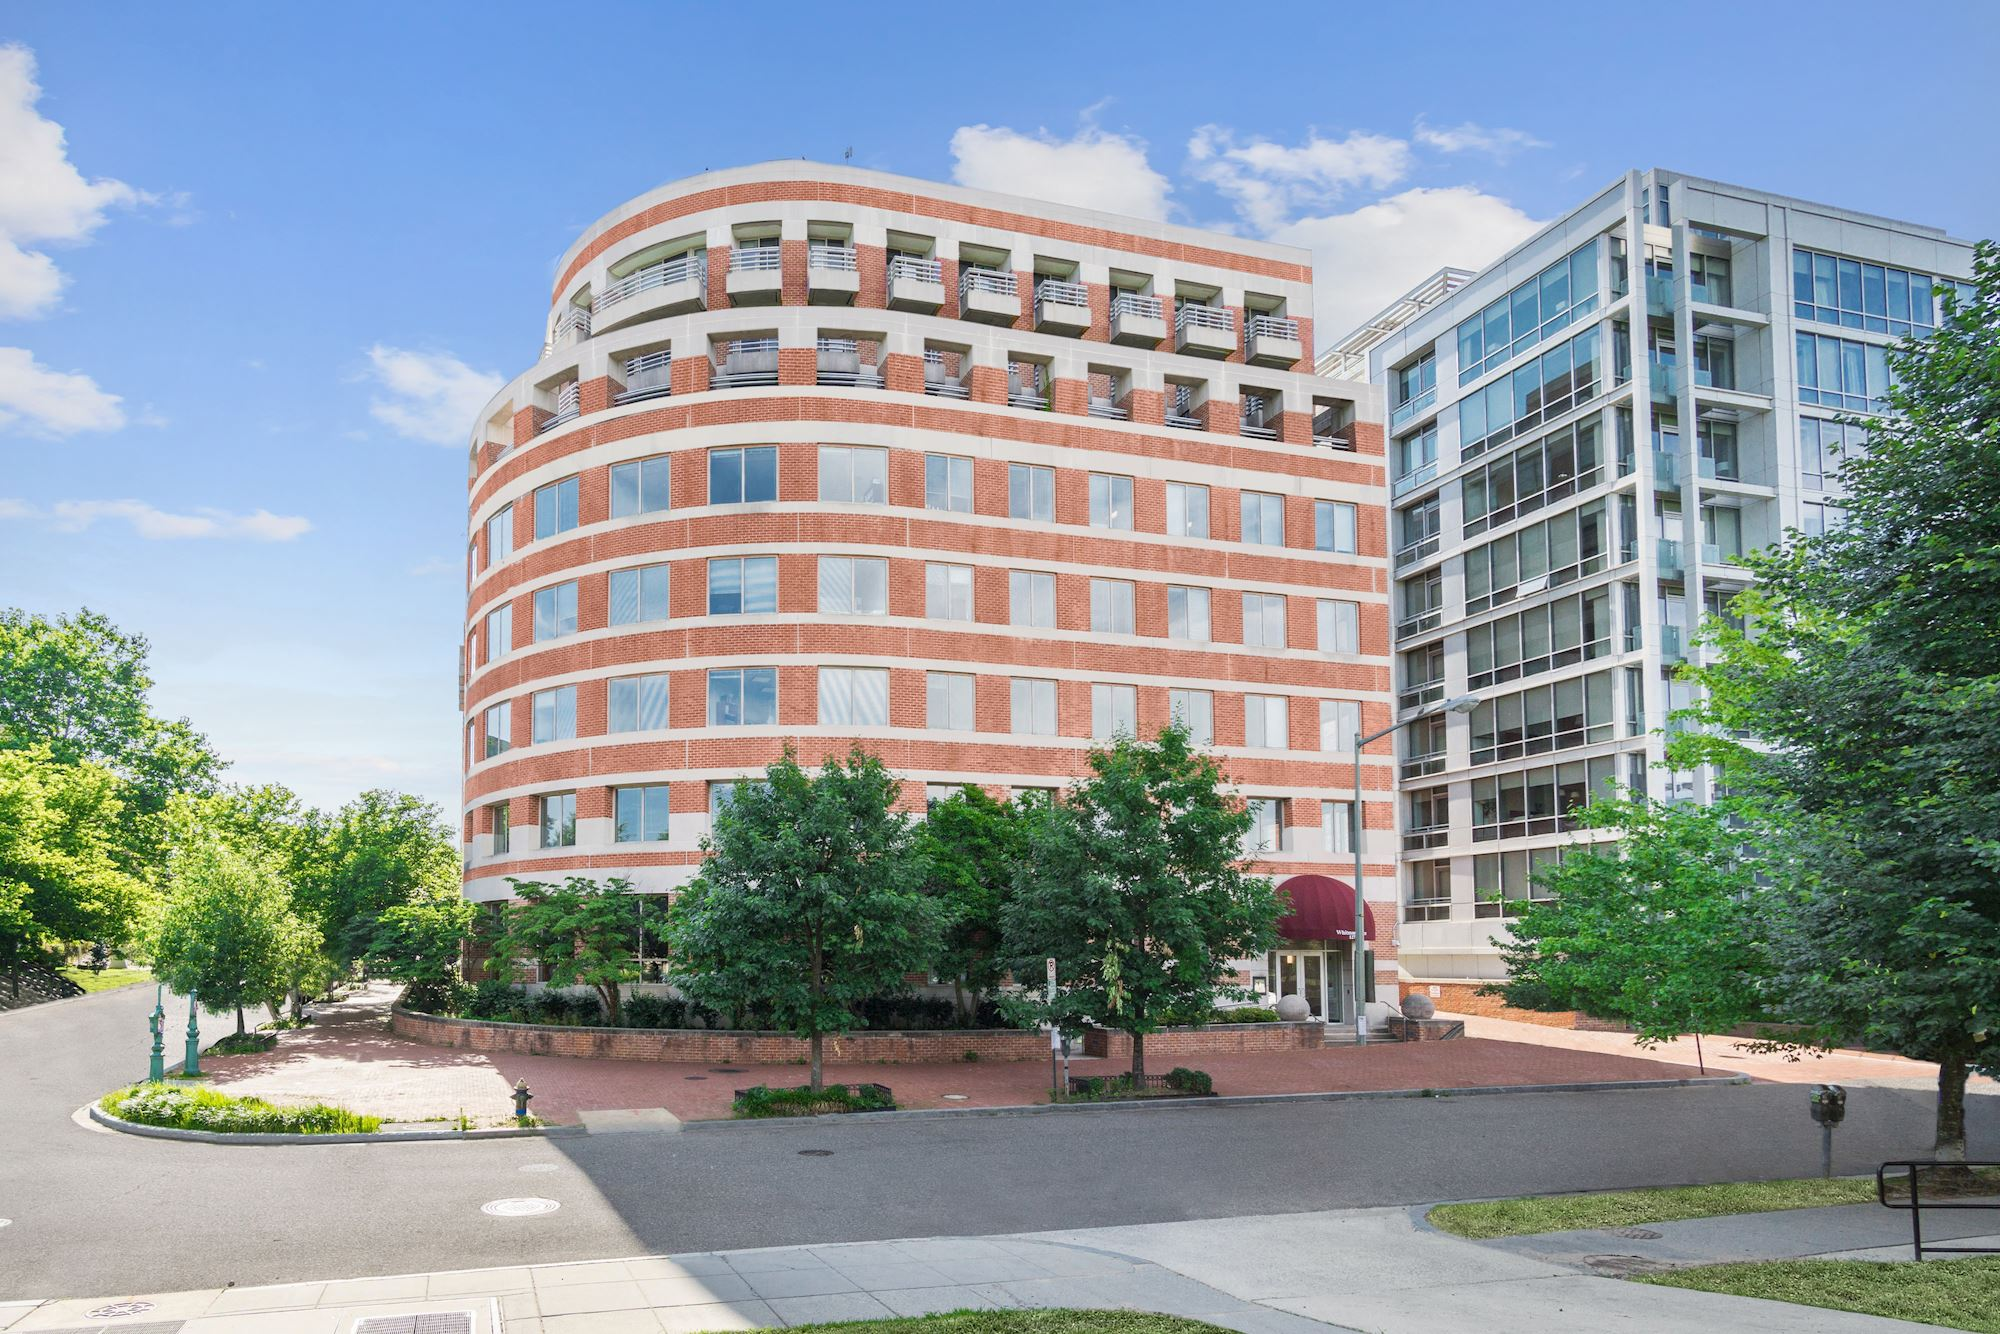 NEW LISTING: Fantastic Penthouse Condo in Whitman Place, Washington DC